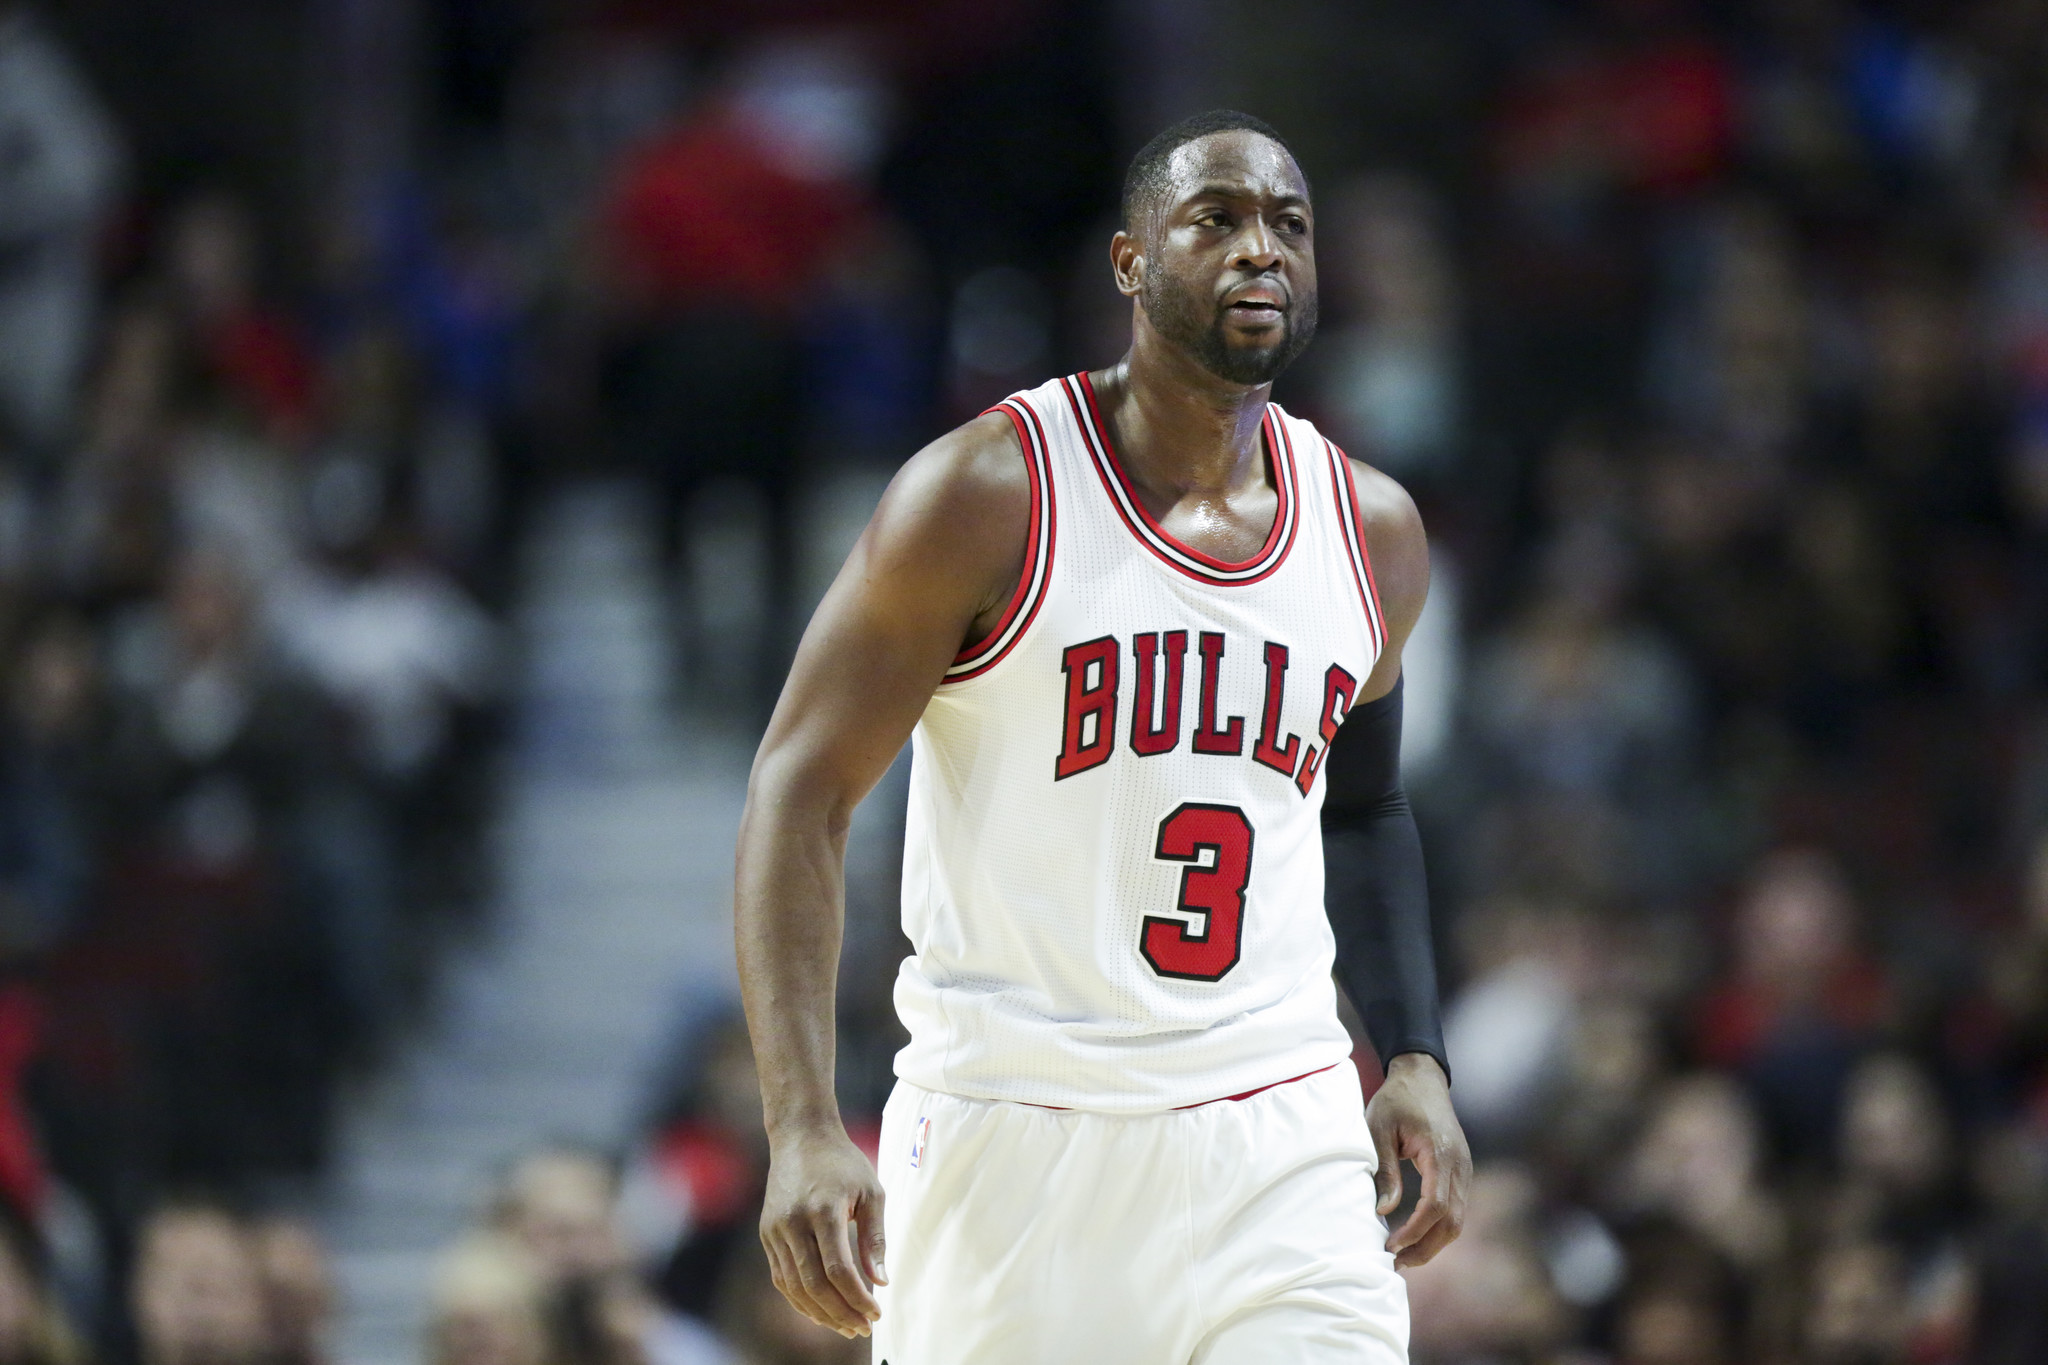 Dwyane Wade revisits 2010 free agency and endorses super teams